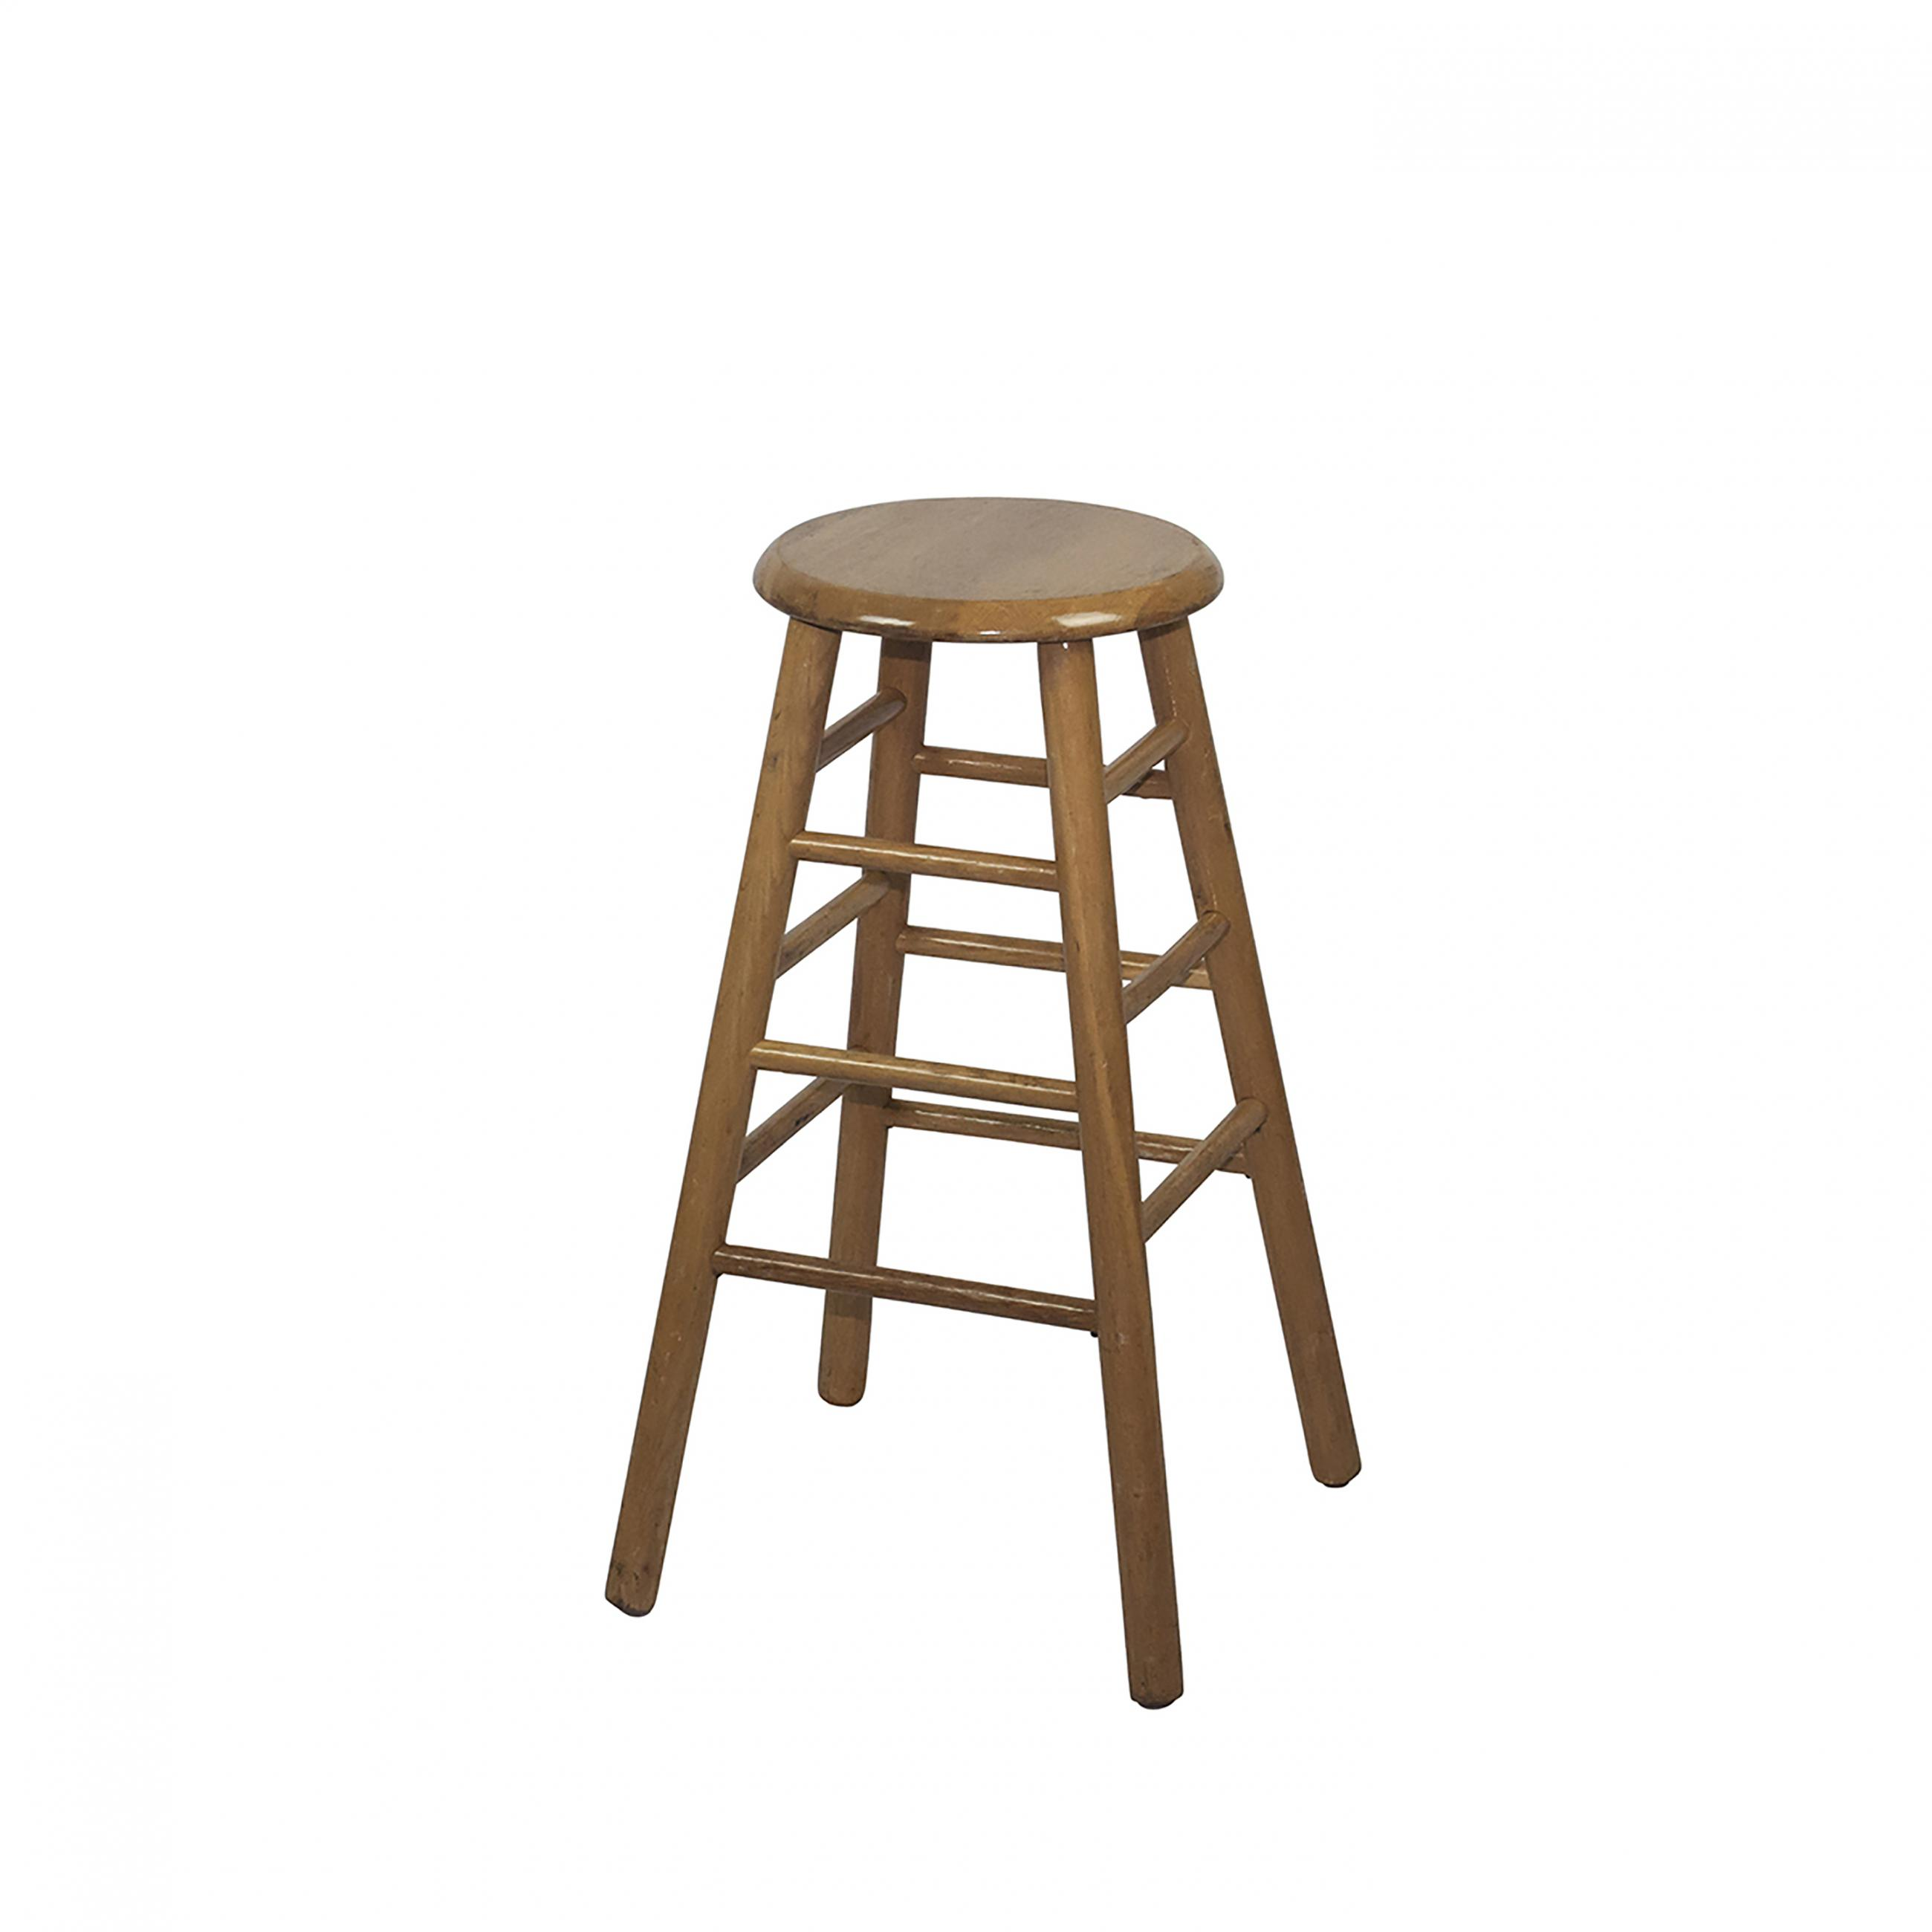 Outstanding Barstool Natural Wood Peak Event Services Short Links Chair Design For Home Short Linksinfo